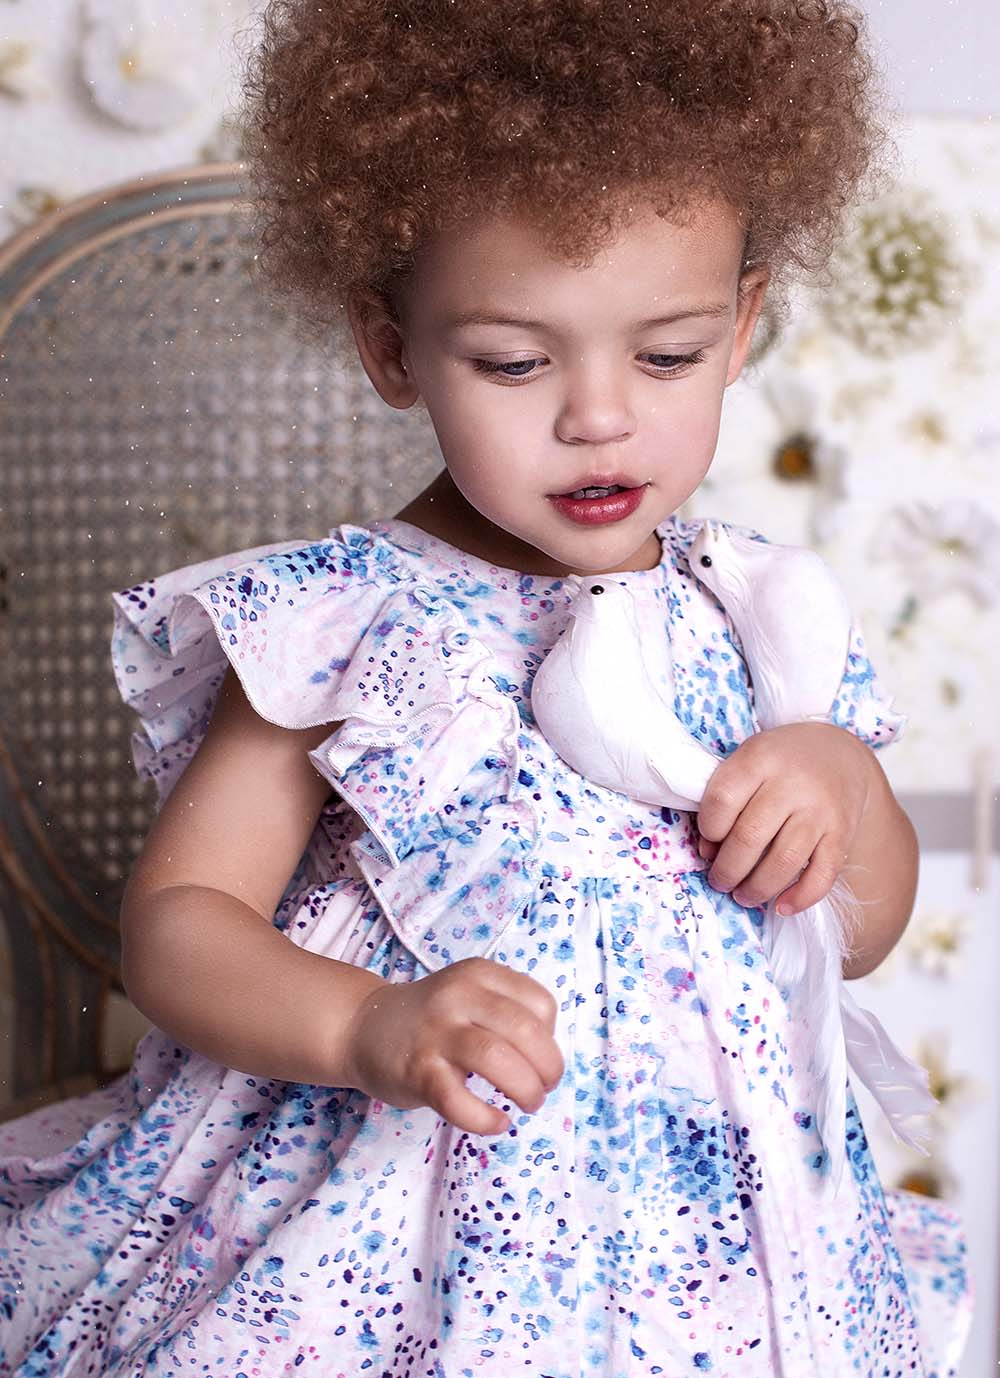 35a9cbb93e1 BÉBÉ - FORGET ME NOT DRESS - PRINT - Welcome to the World of Tutudumonde